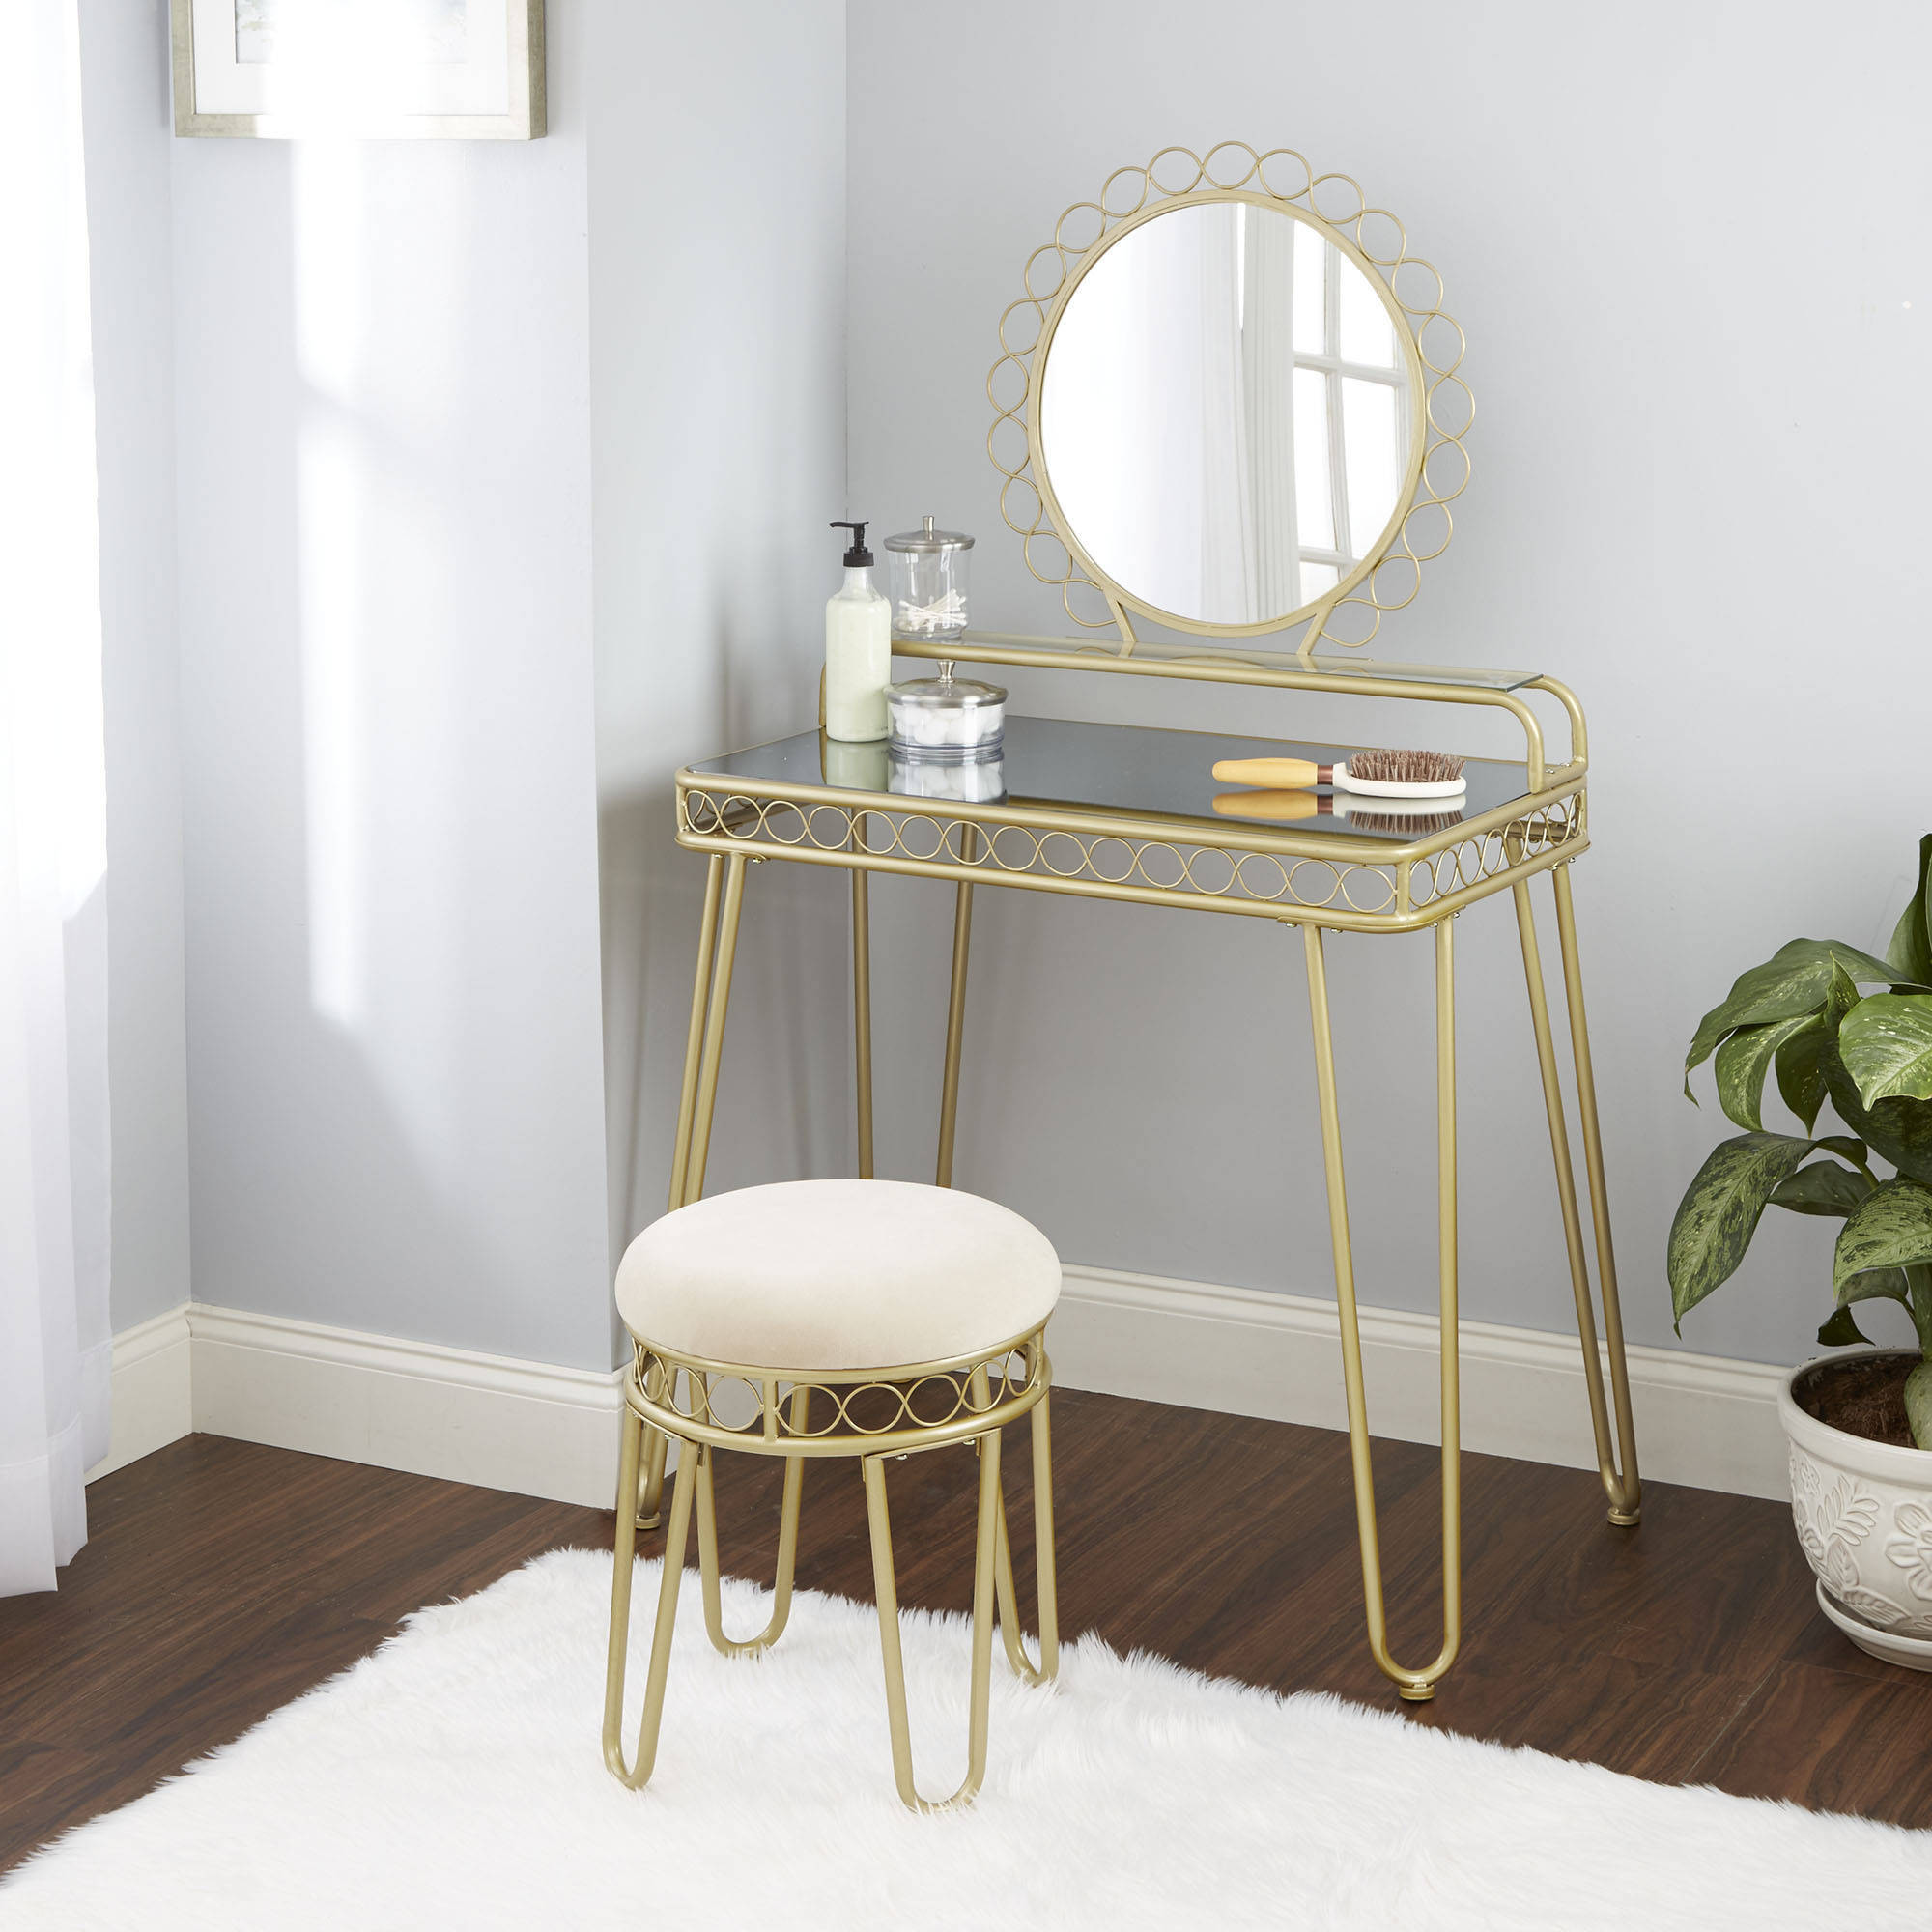 Details about Bedroom Vanity Table Mirrored Glass Shelf Storage w/ Stool  Chic Versatile New